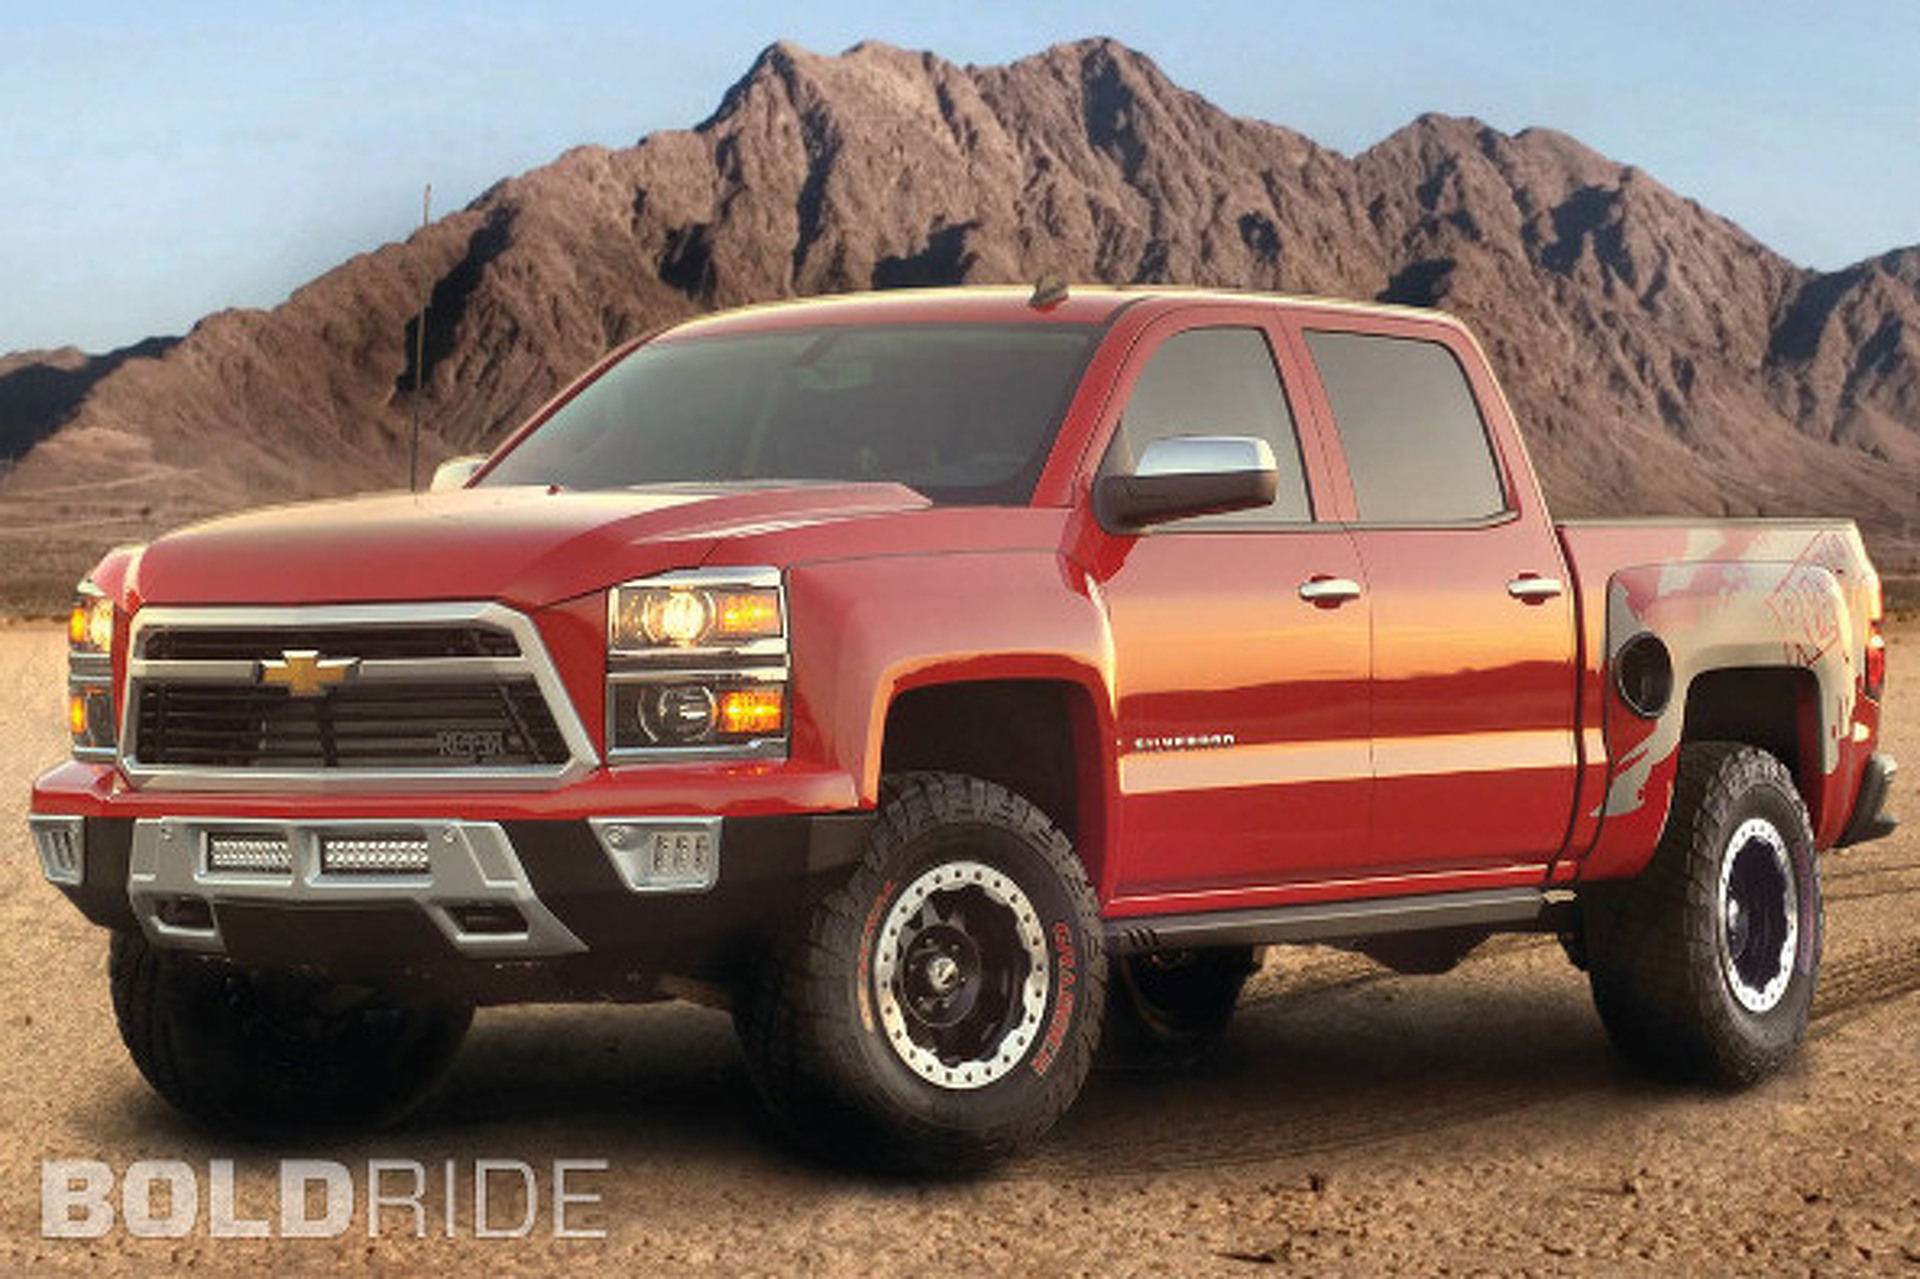 silverado look sale quick chevrolet the for reaper roadshow s take here at a news hands first on